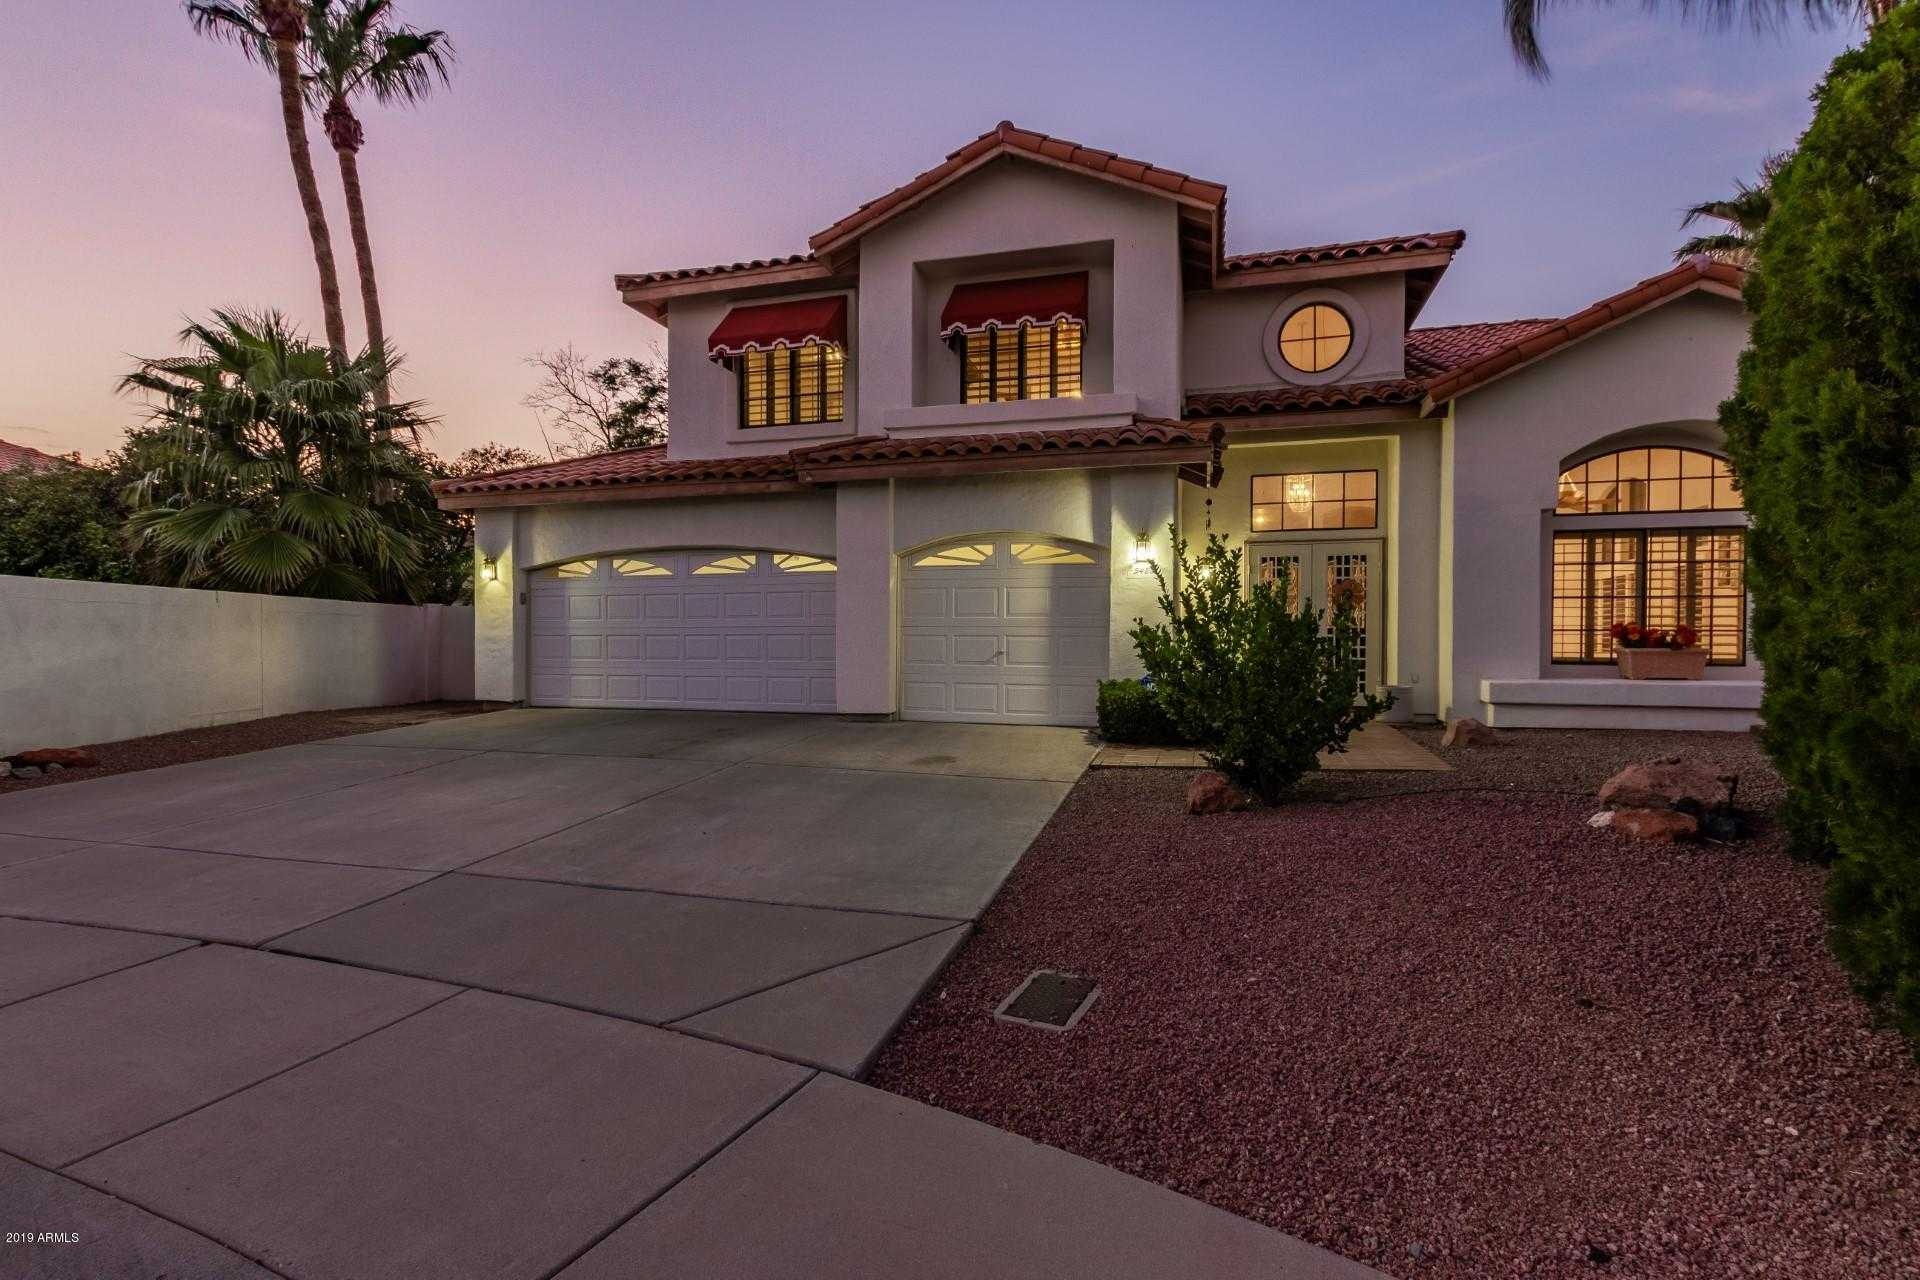 $398,000 - 4Br/3Ba - Home for Sale in Estates At Marshall Ranch, Glendale